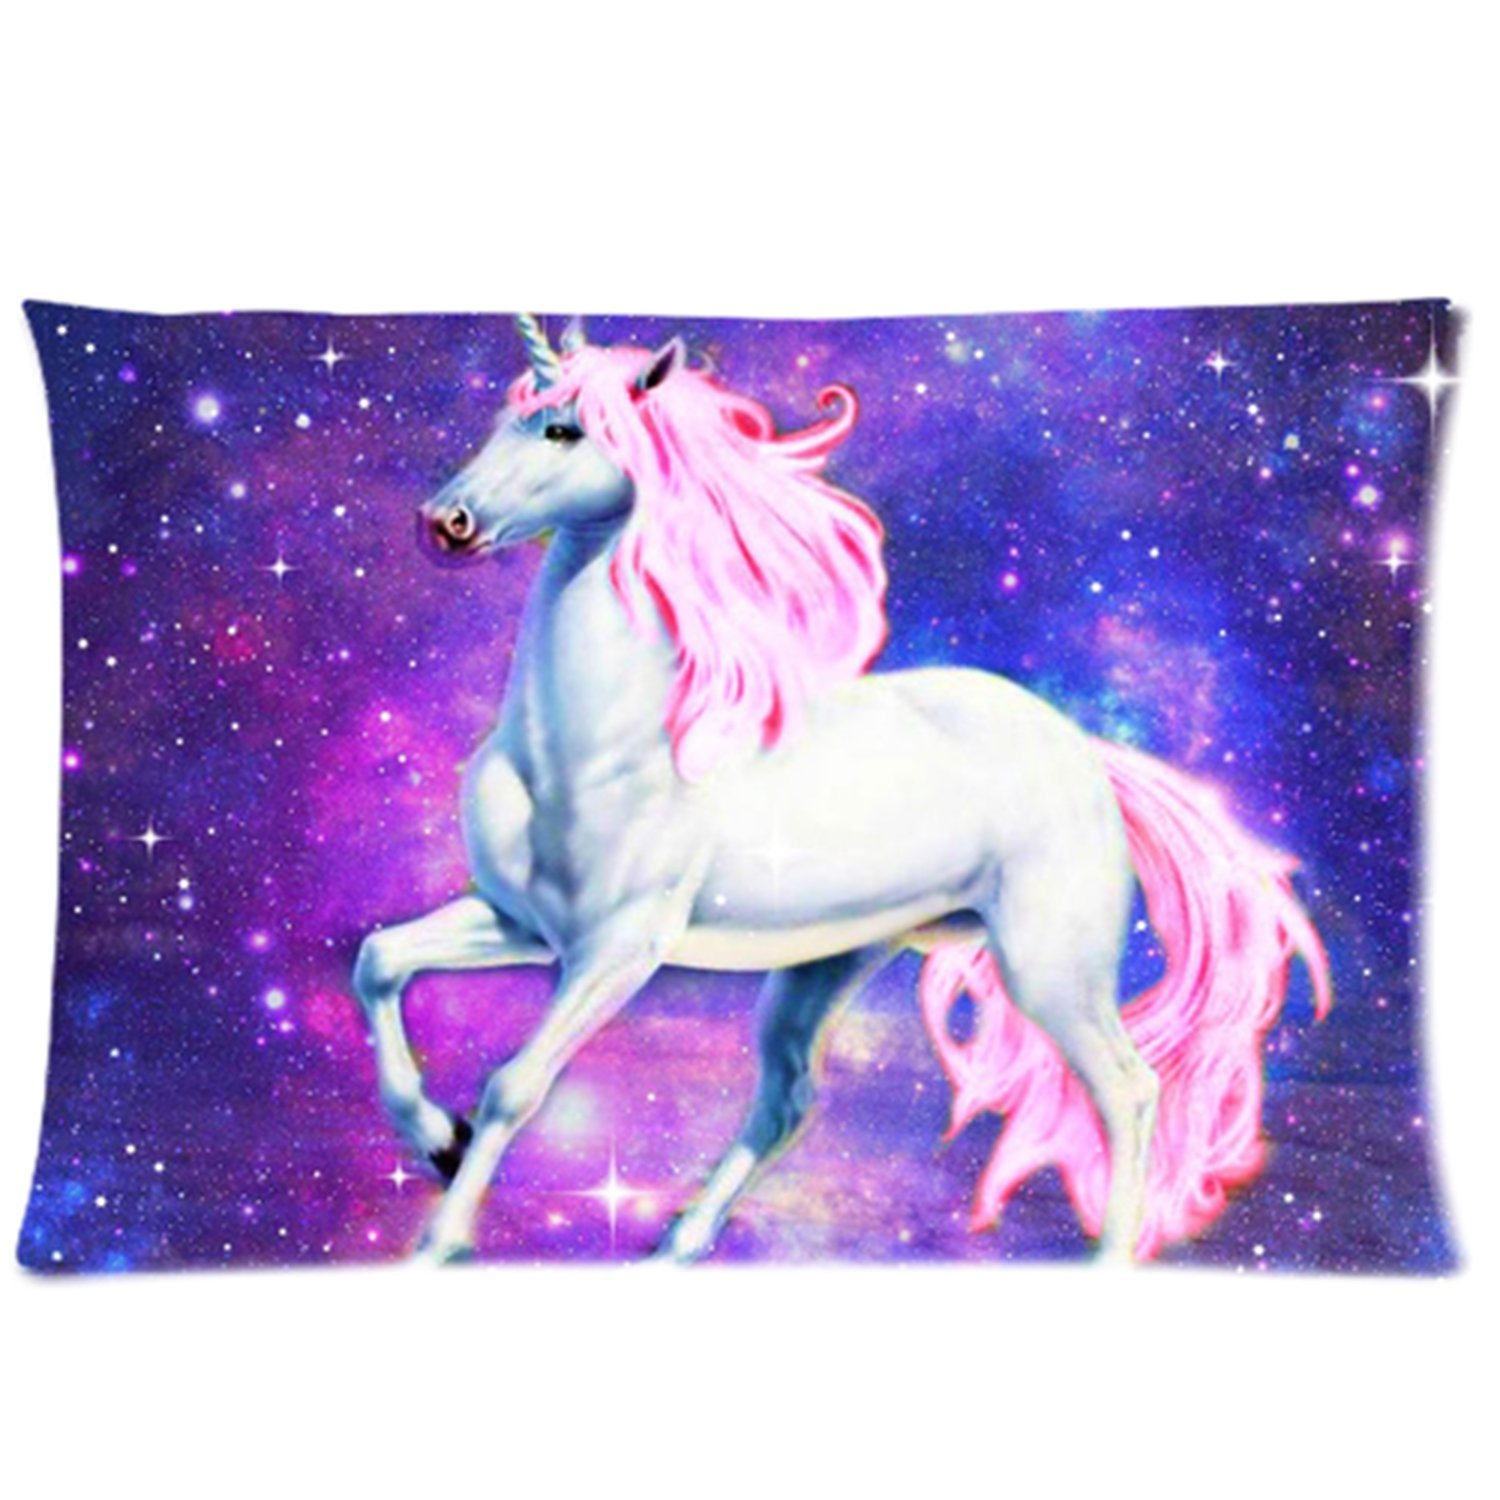 Nebula Galaxy Space Unicorn Pillowcase - Pillowcase with Zipper, Pillow Protector, Best Pillow Cover - Standard Size 20x30 inches, One-sided Print 20x30 inch Pillowcase